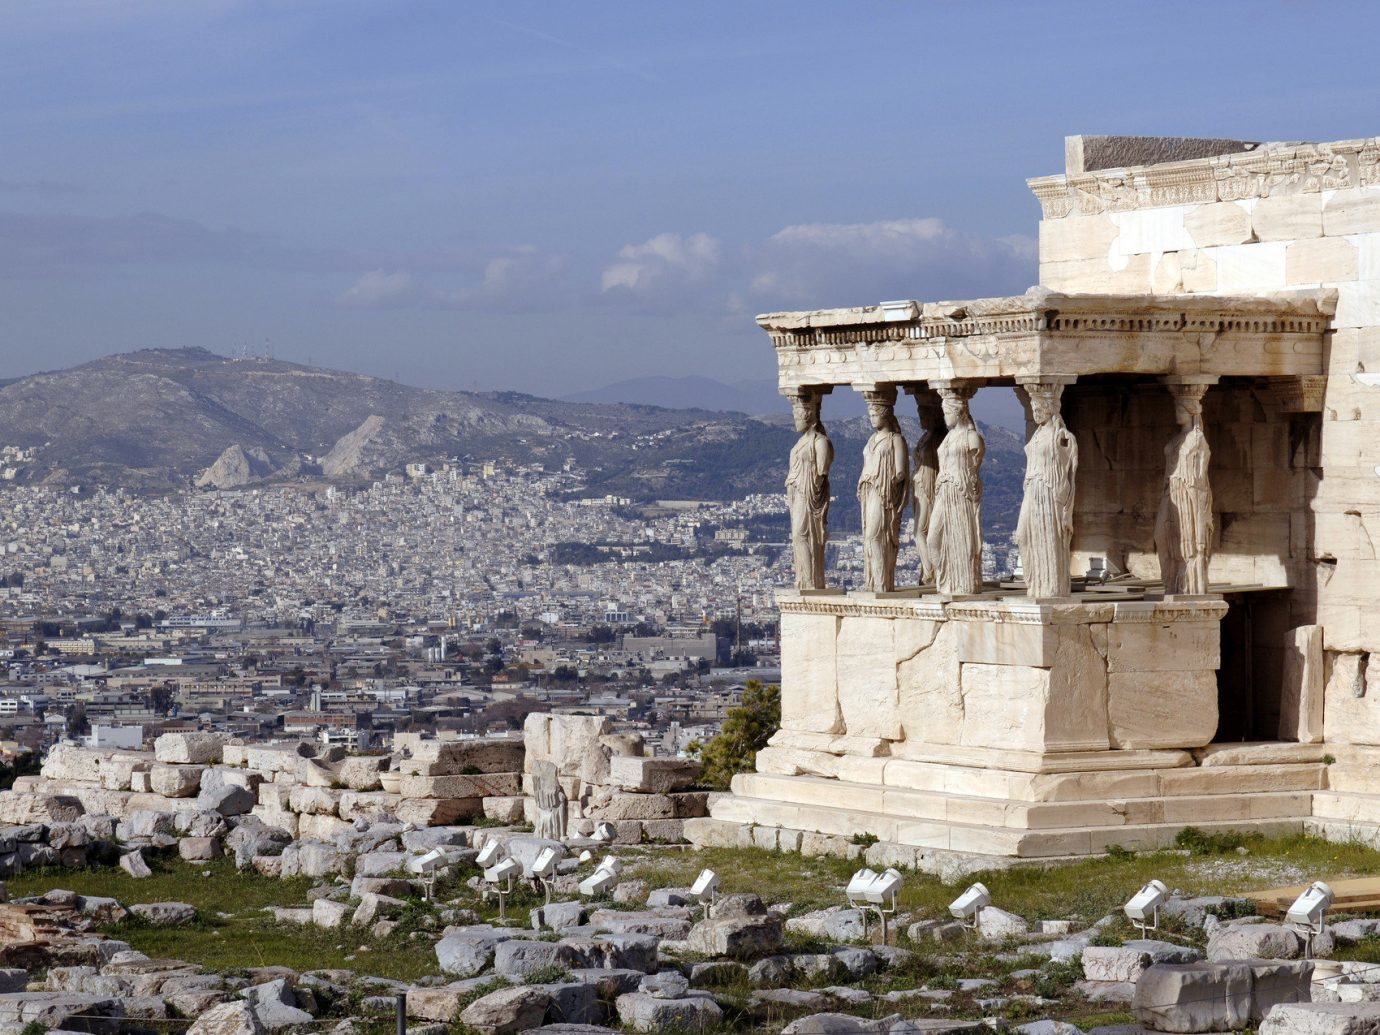 Travel Tips Trip Ideas outdoor sky building Ruins historic site mountain landmark archaeological site ancient history Town tourism fortification ancient roman architecture temple ancient greek temple unesco world heritage site monastery place of worship Sea monument ruin stone